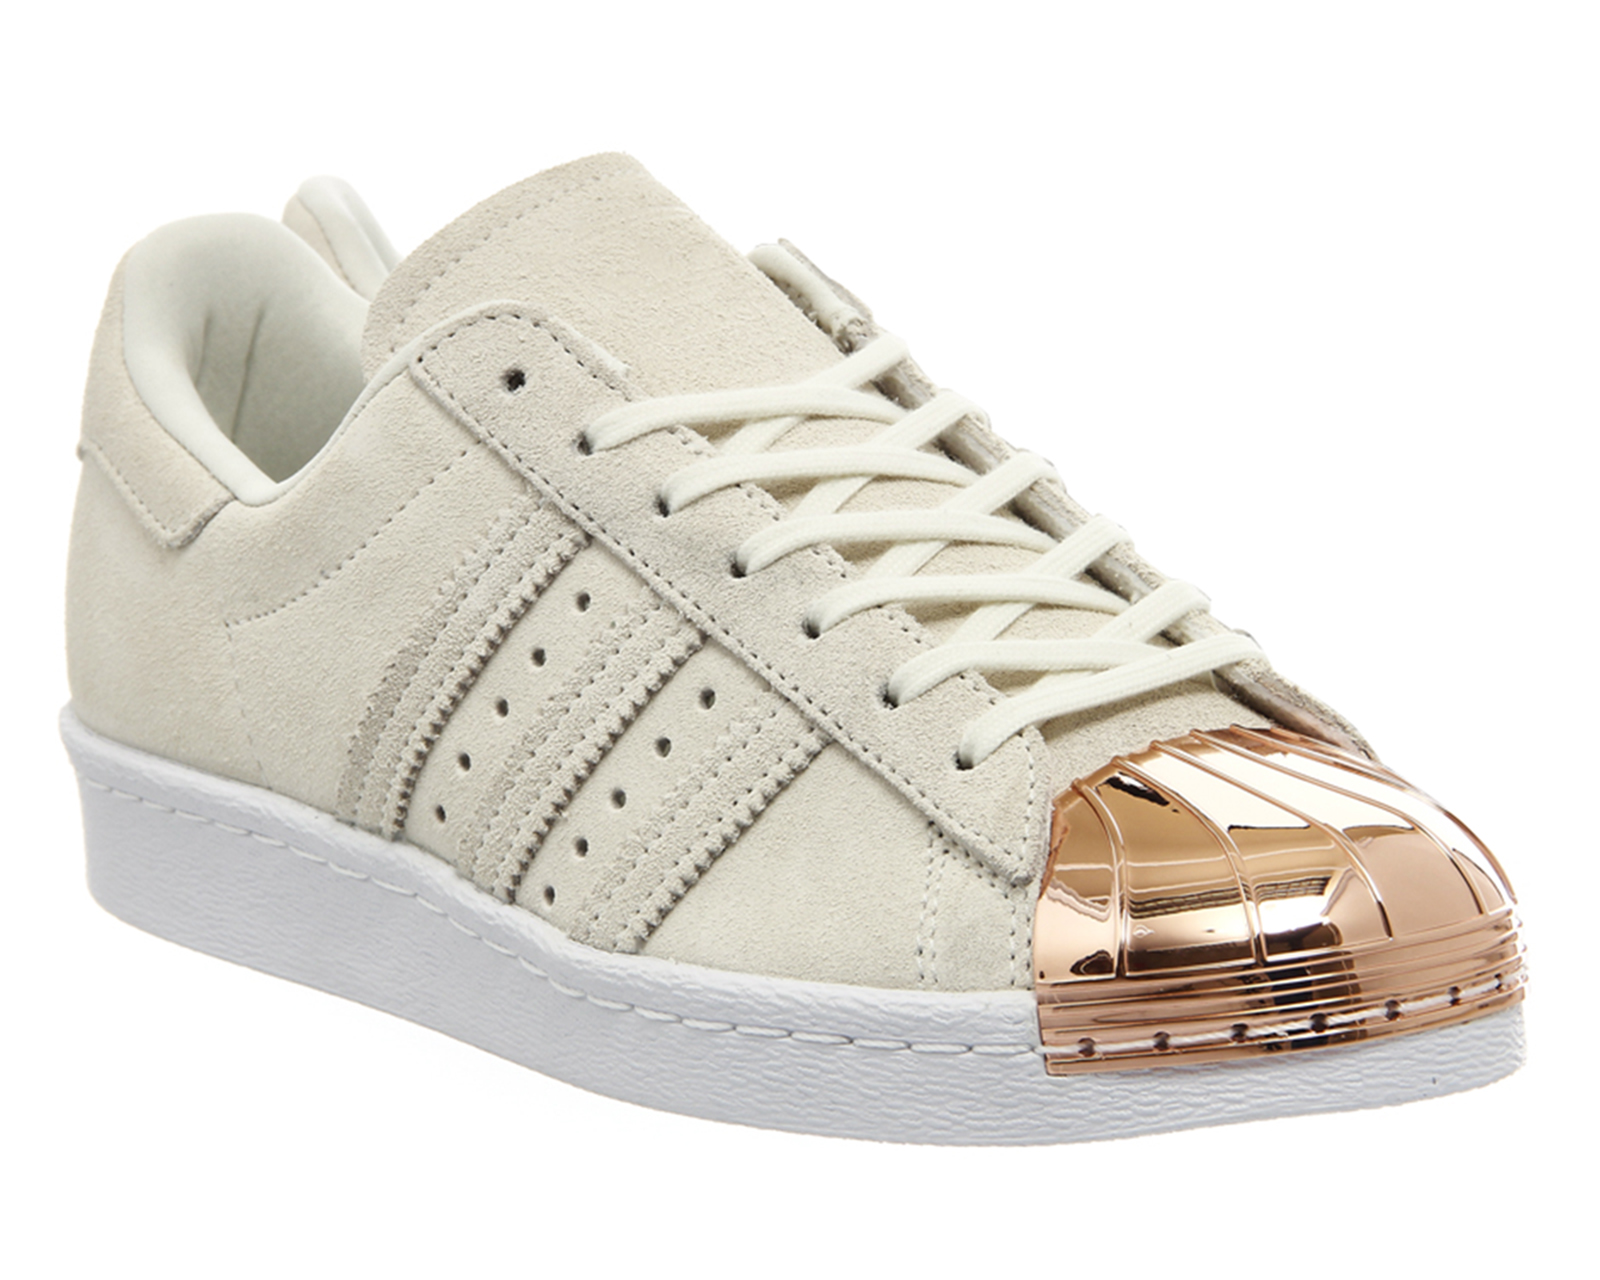 adidas superstar 80 39 s metal toe w off white rose gold. Black Bedroom Furniture Sets. Home Design Ideas